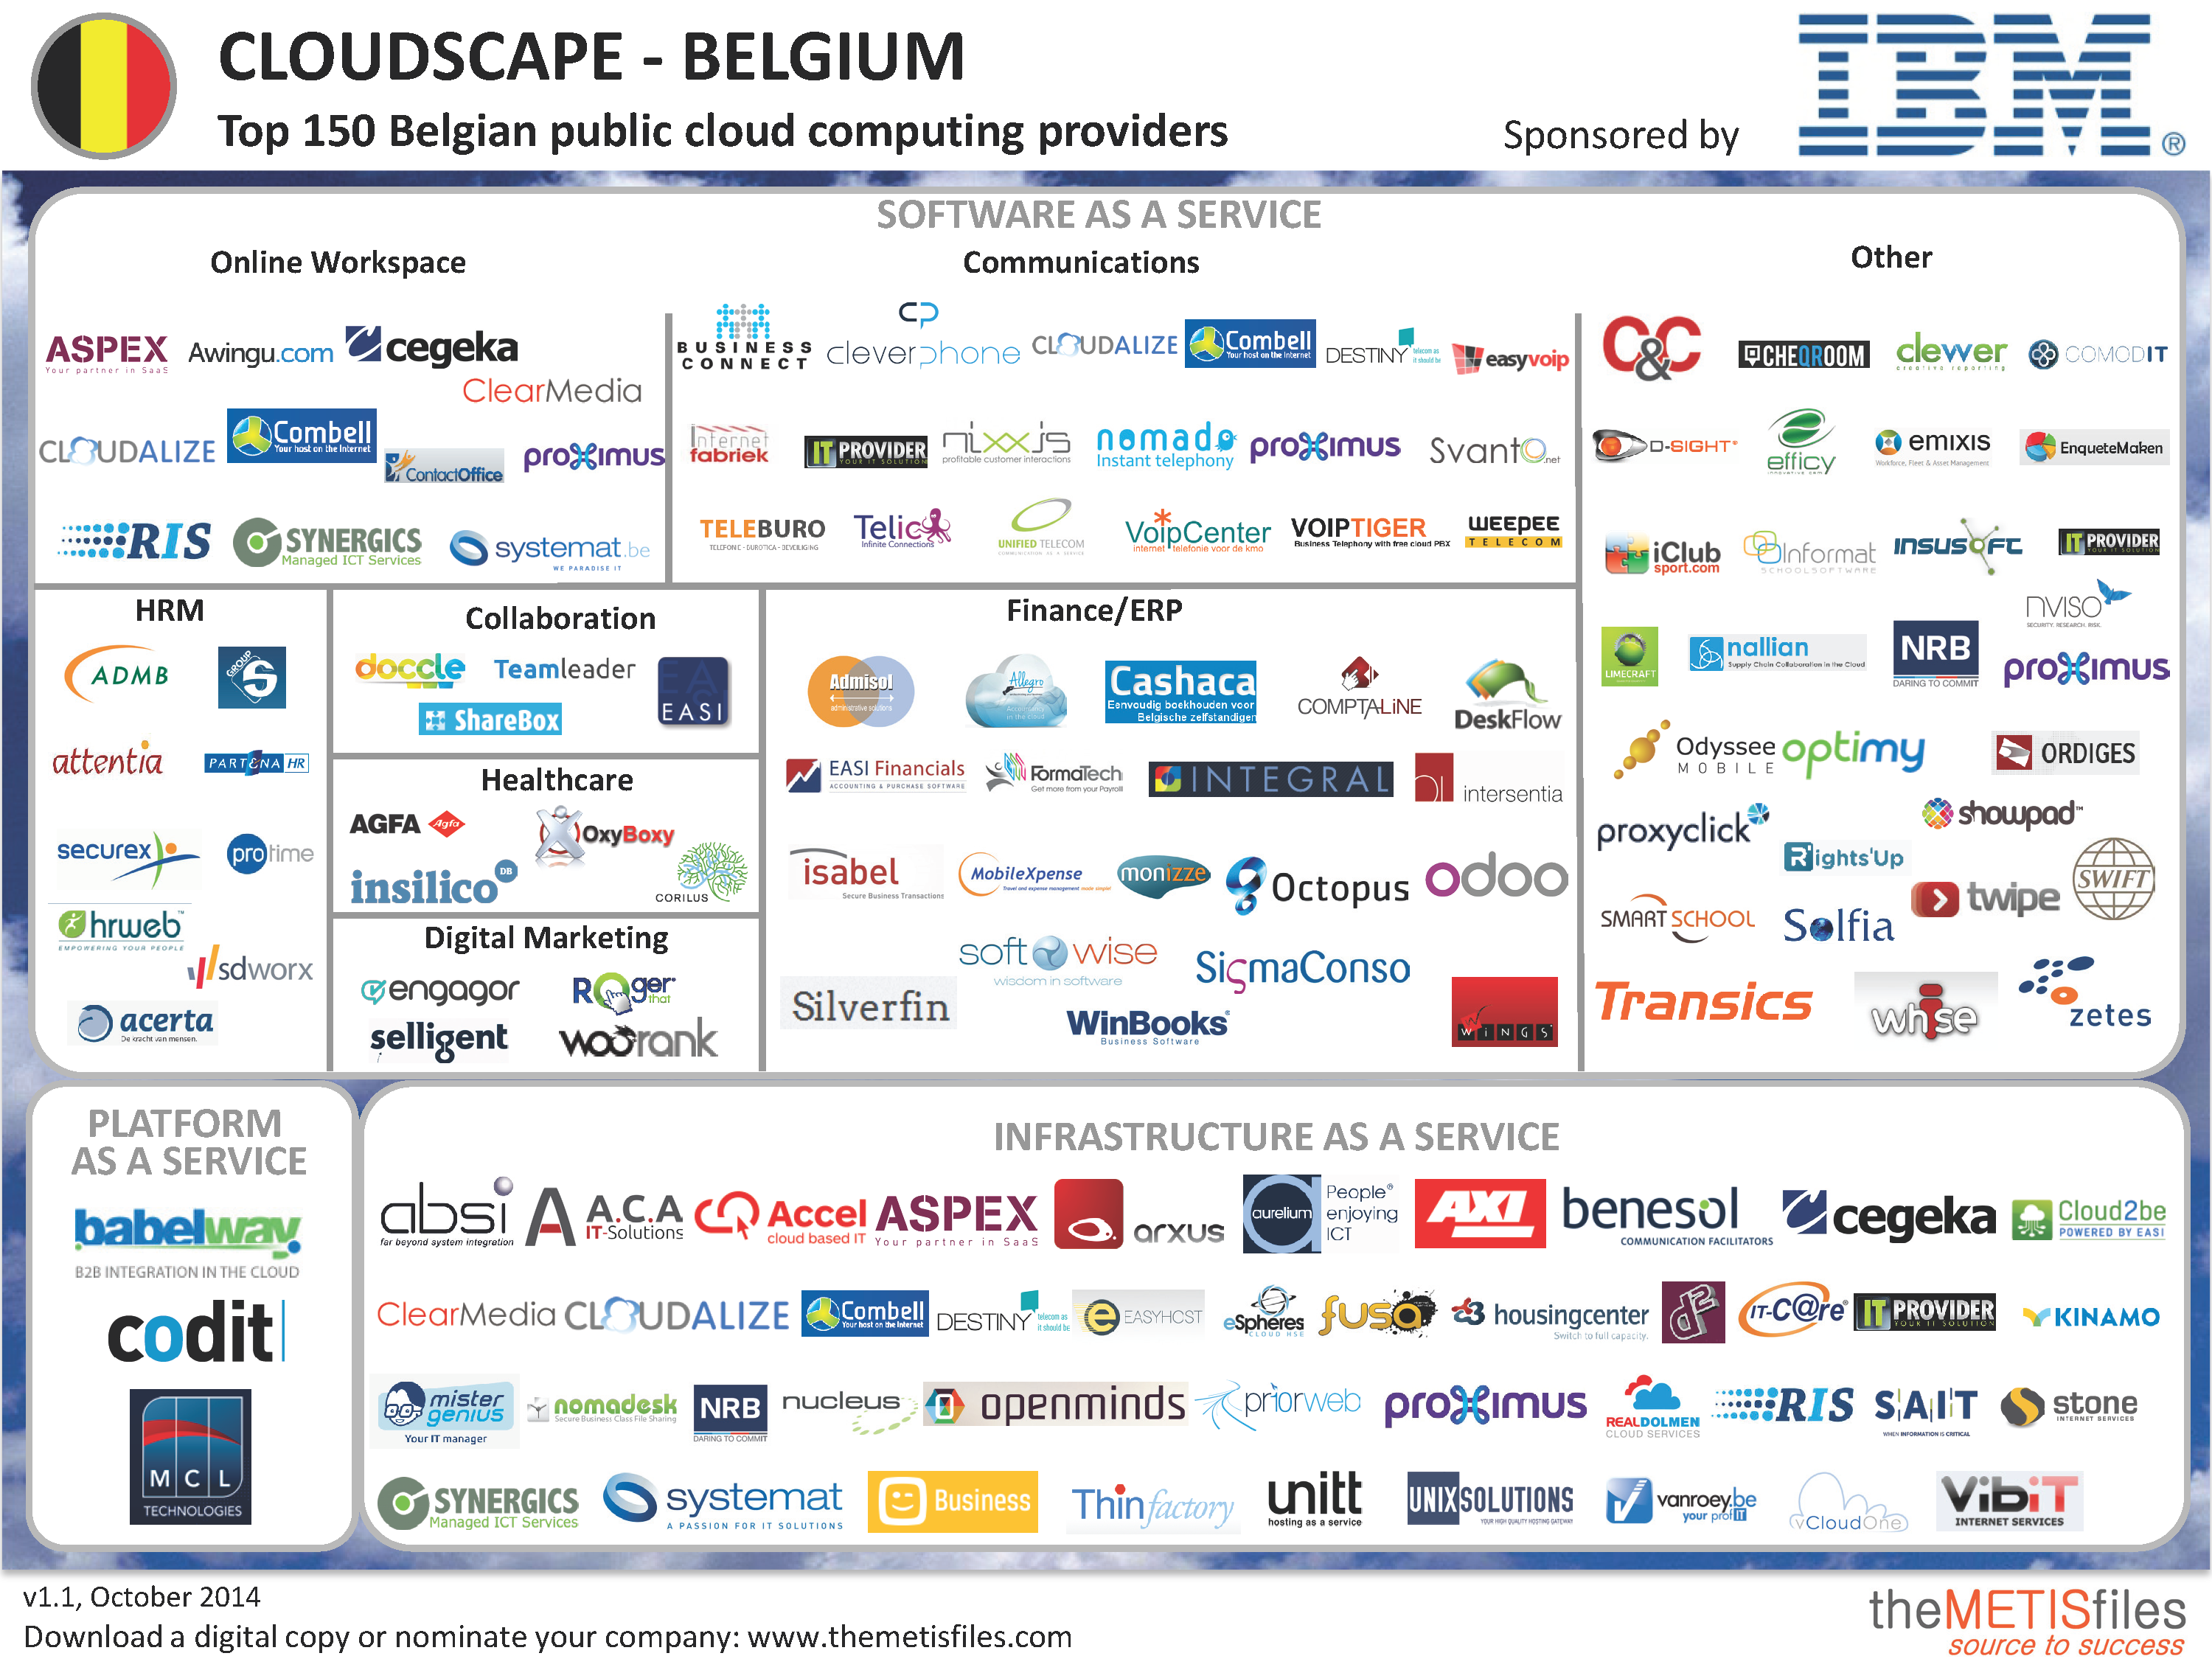 Belgium-Cloudscape-version-1.1